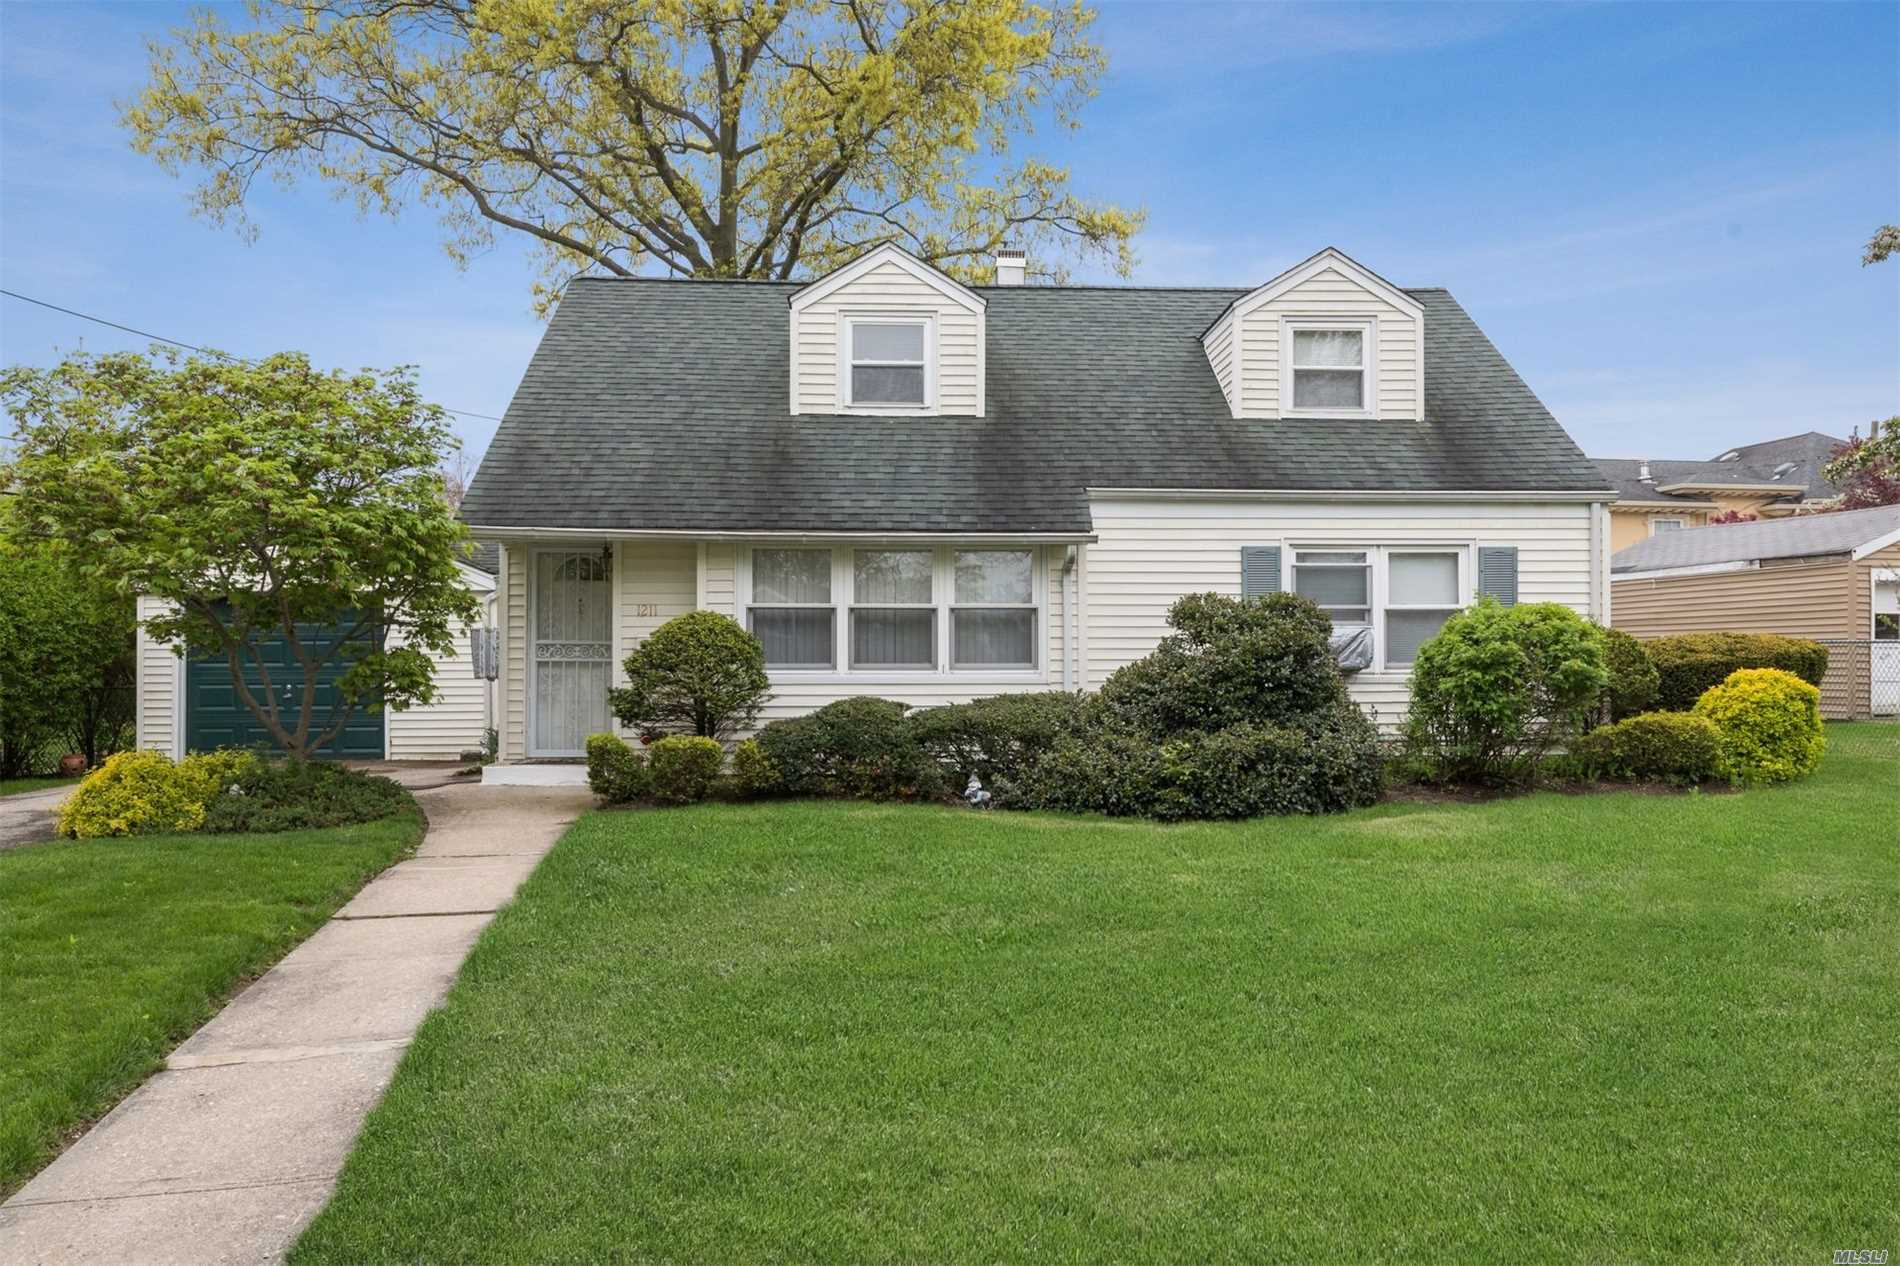 LOCATION! LOCATION! LOCATION !CHARMING CAPE ON QUIET CUL-DE-SAC OFFERS OPEN FLOOR PLAN AND OVERSIZED PROPERTY ON PARK-LIKE GROUNDS (95X125) . CLOSE TO SCHOOLS, SHOPPING, TRANSPORTATION AND PARKWAYS. PRICED TO SELL!! WON'T LAST!! GREAT POTENTIAL!!